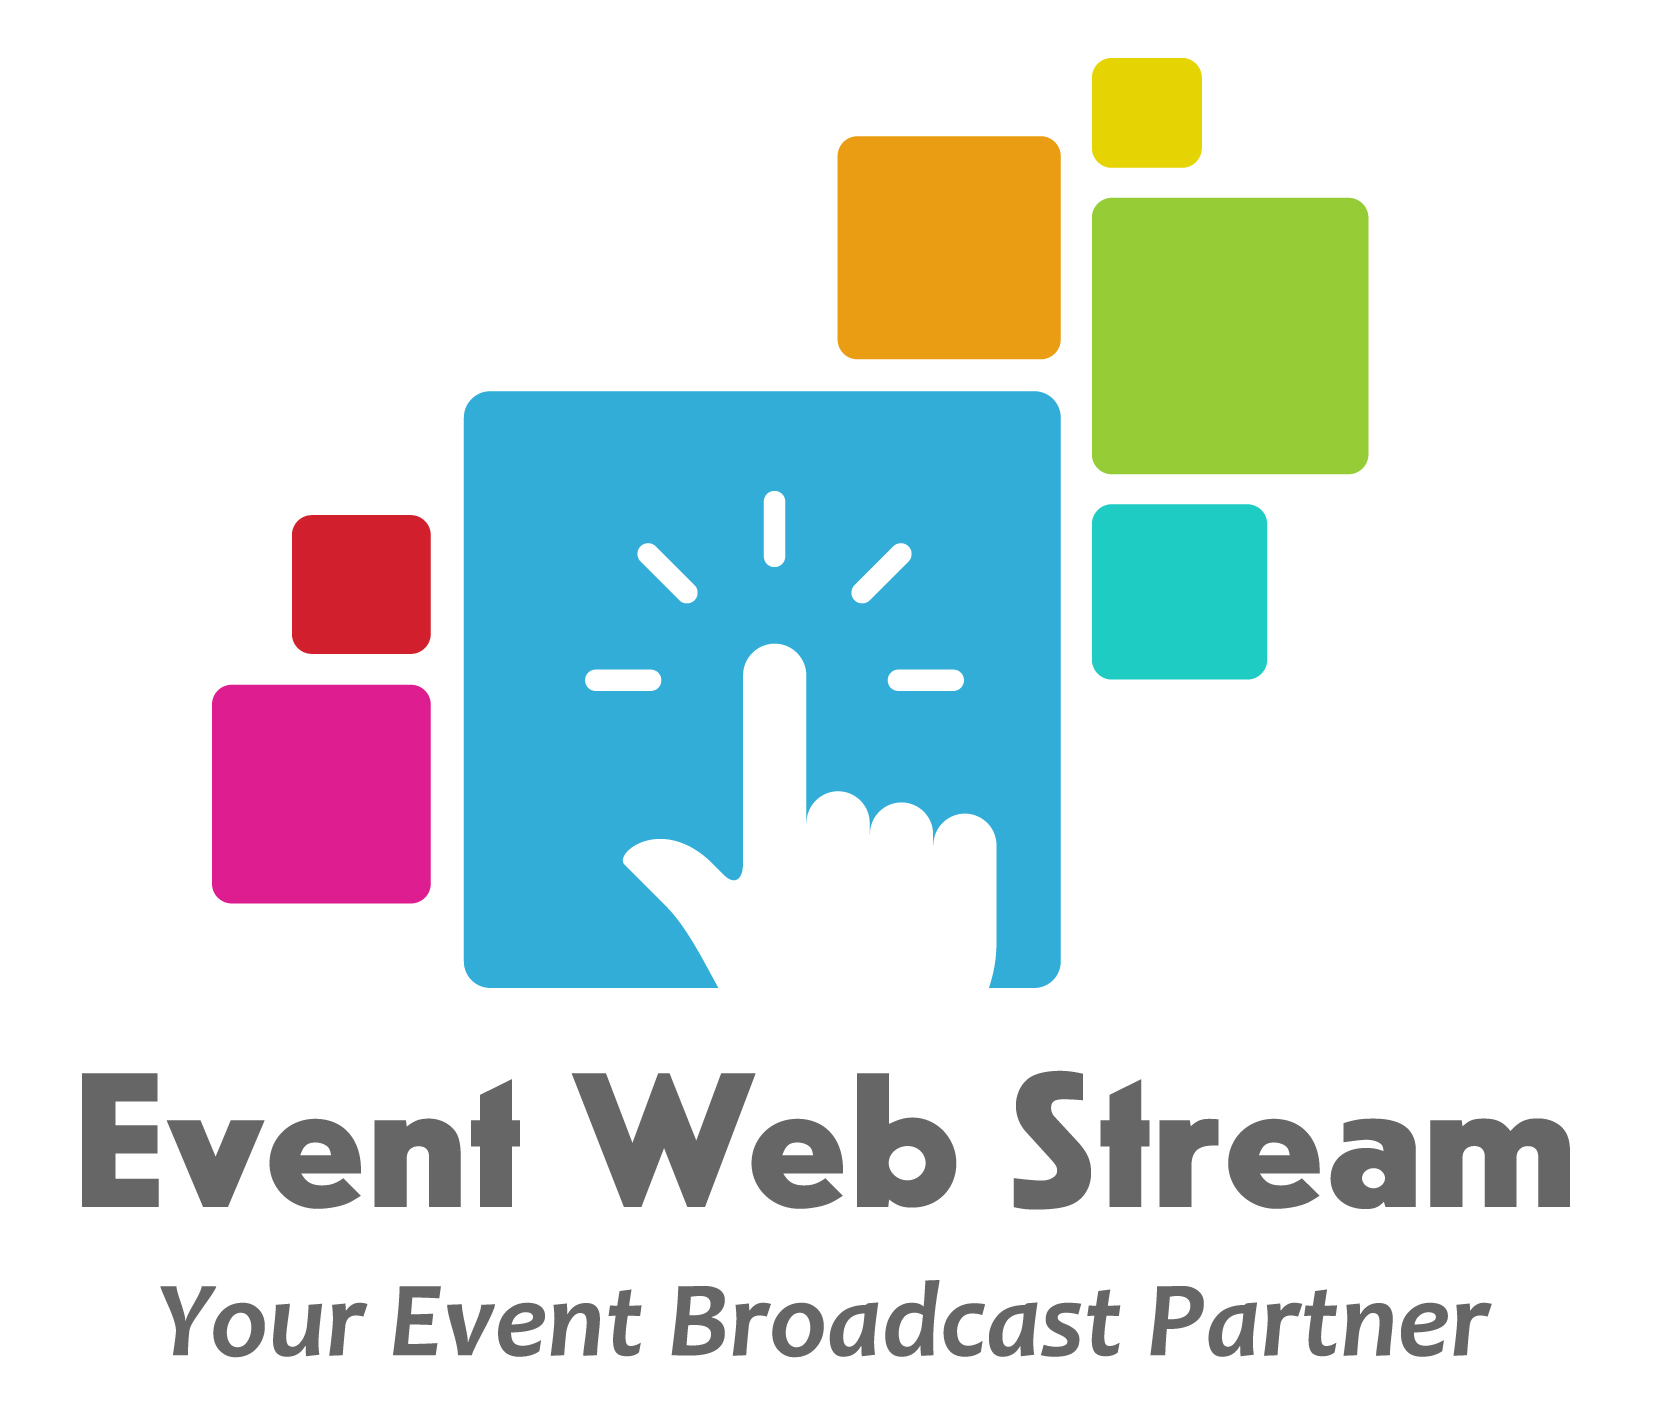 Event Web Stream